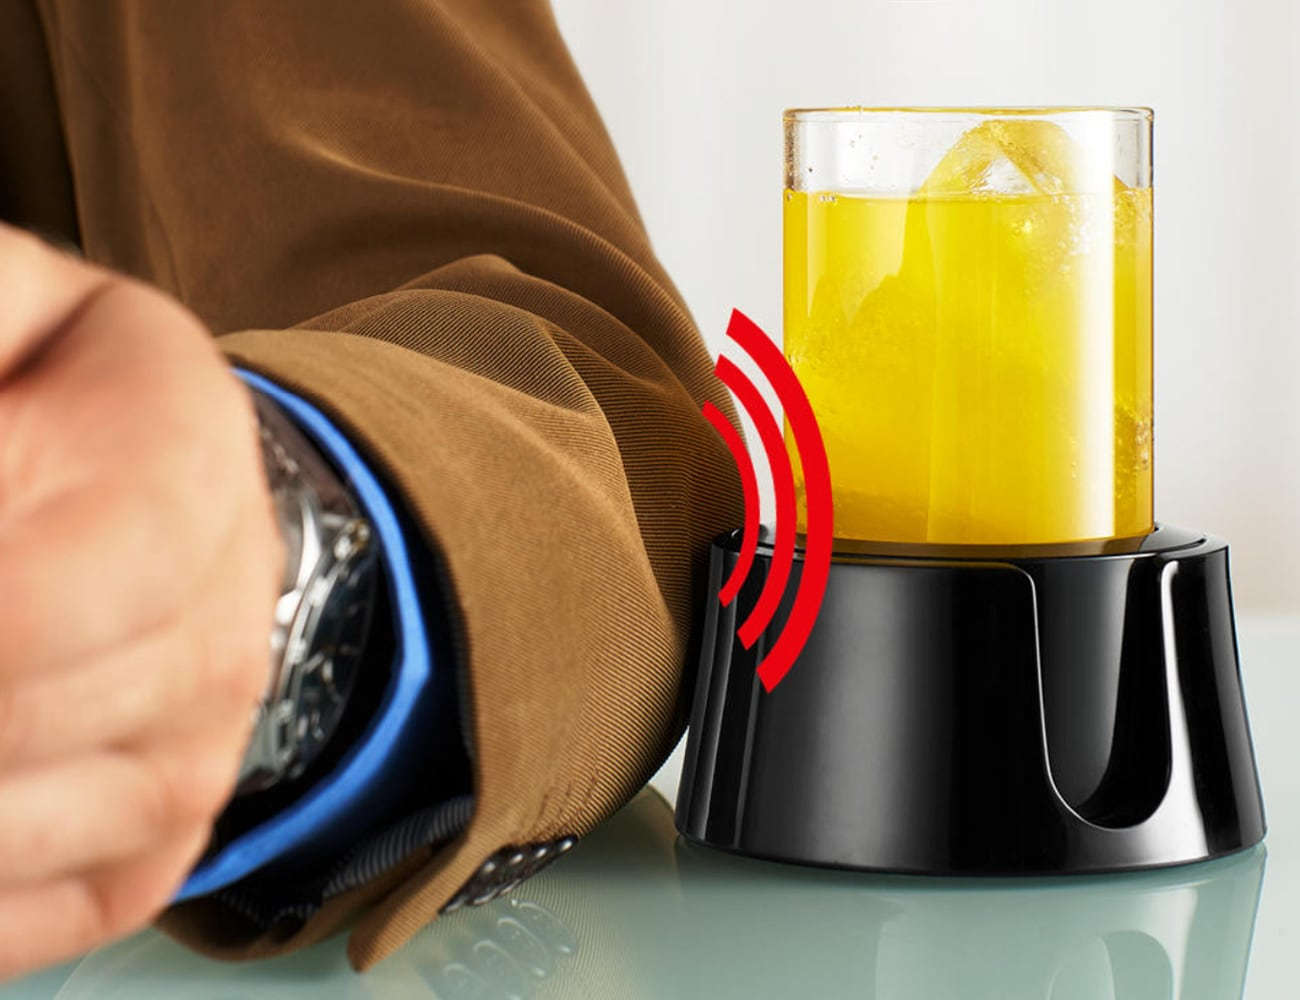 TableCoaster Anti-Spill Drink Holder prevents your drink from falling over